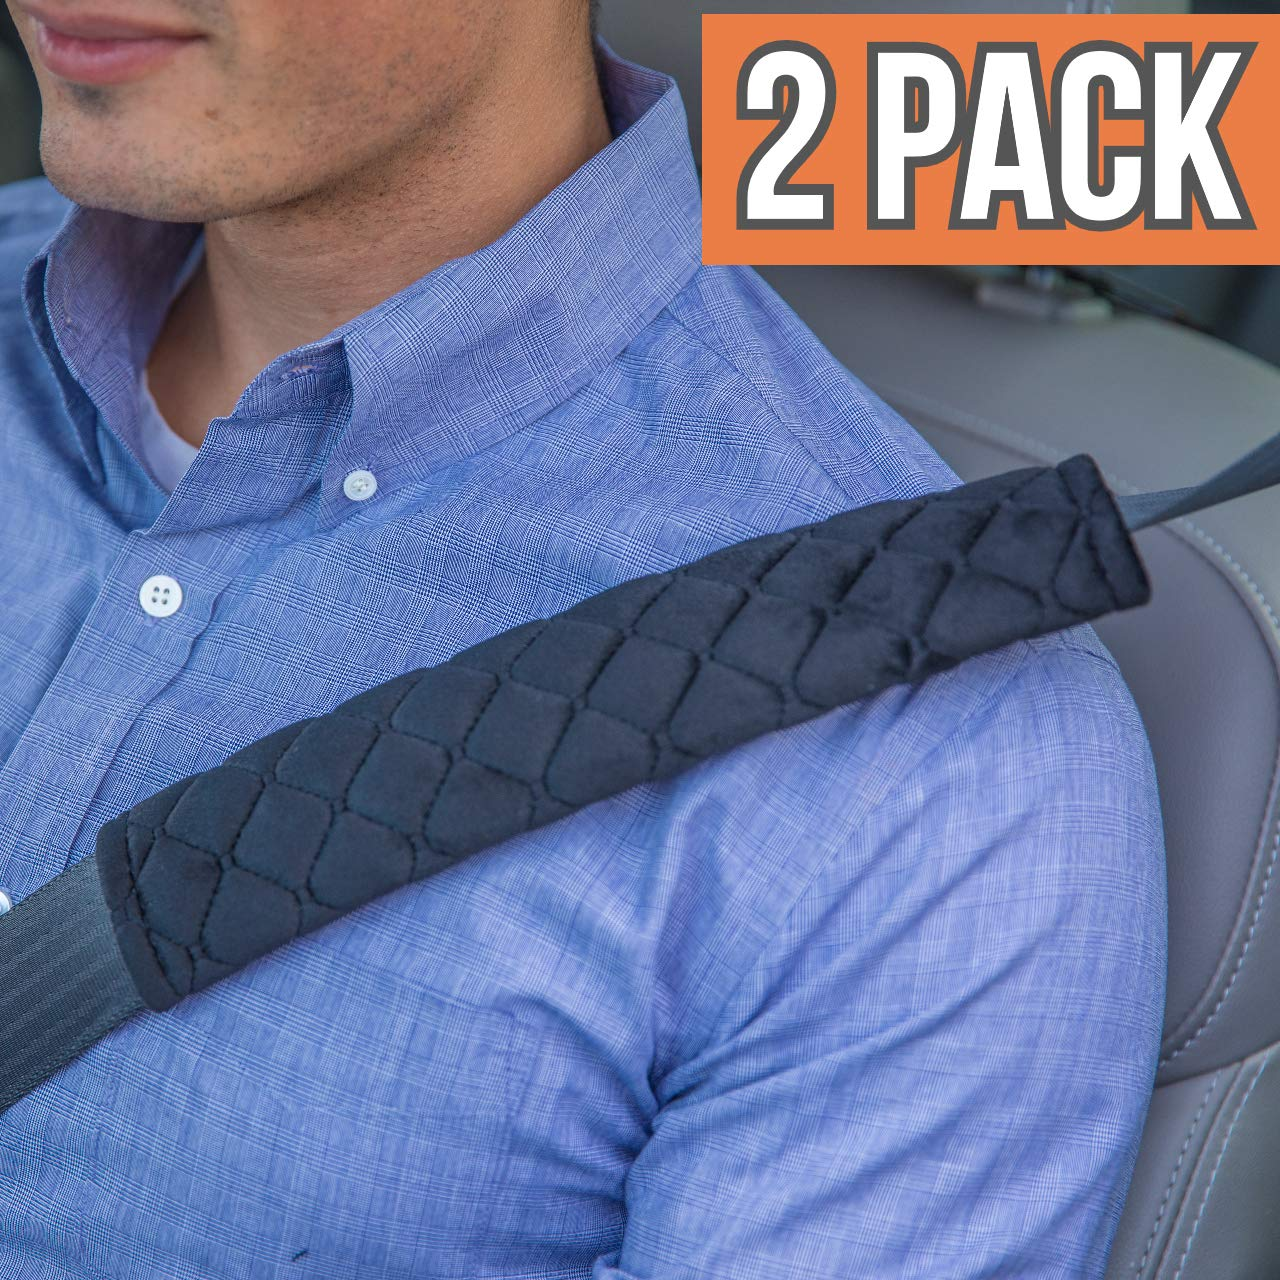 ANDALUS Seat Belt Covers for Adults, Car Seatbelt